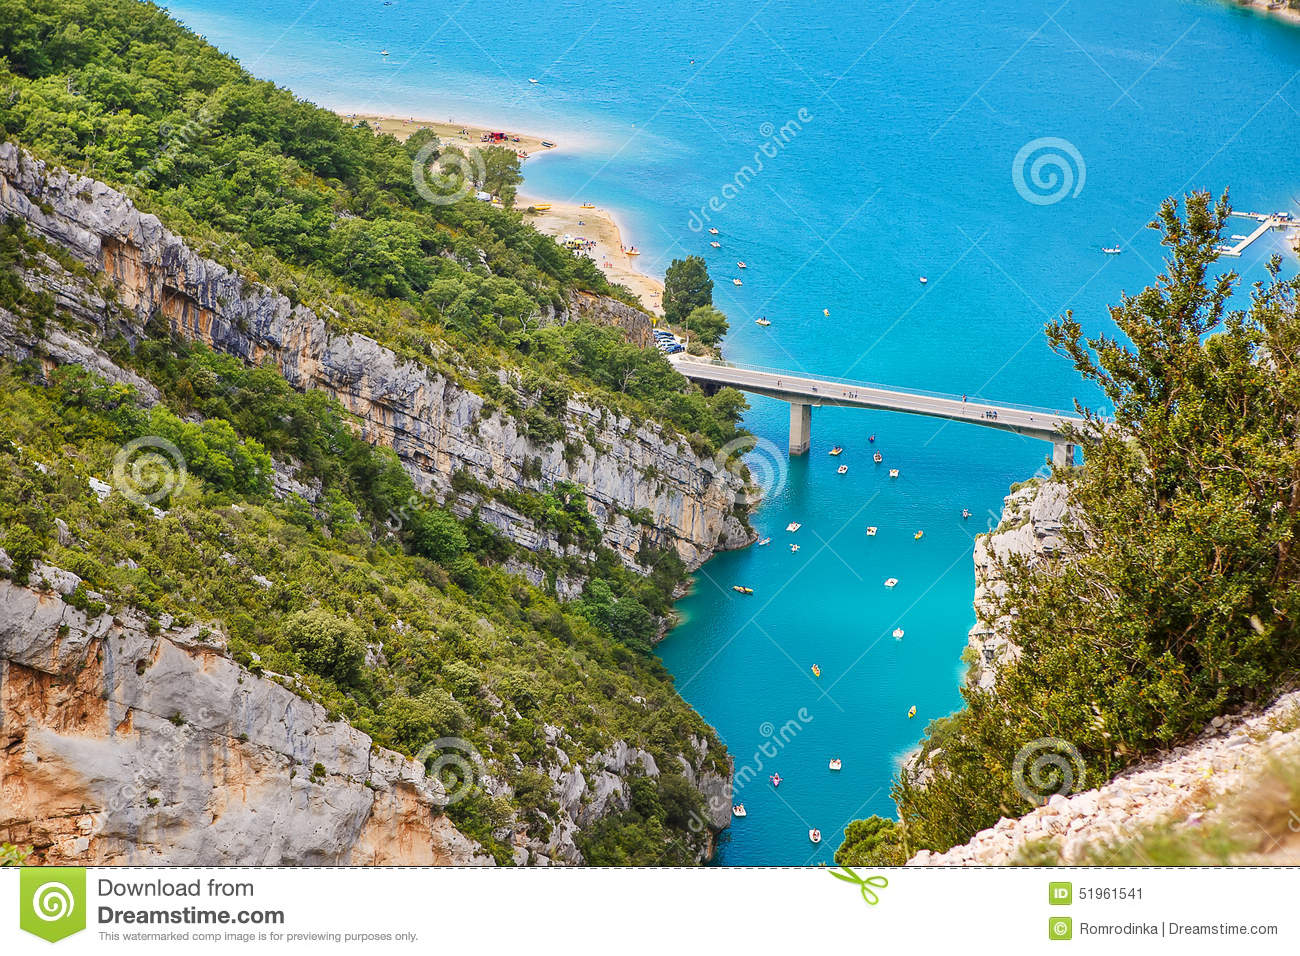 Gorges du verdon provence in france europe beautiful - Pharmacie de l europe salon de provence ...